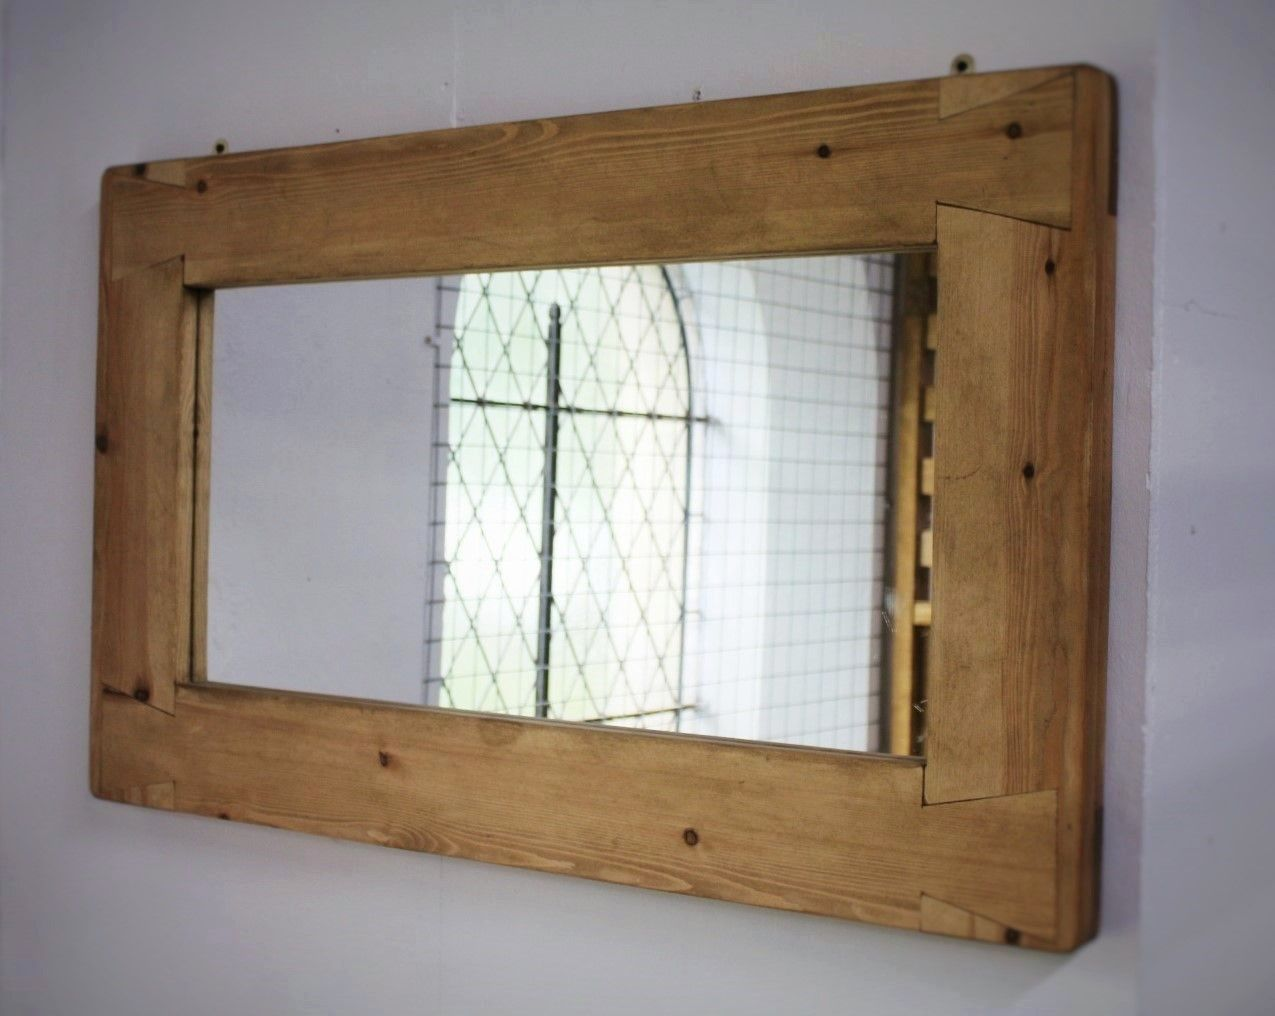 Handmade available from somerset uk rustic mirror with eco handmade large wood frame wall mirror in chunky light tone eco wood custom options available industrial rustic fusion from somerset uk amipublicfo Choice Image